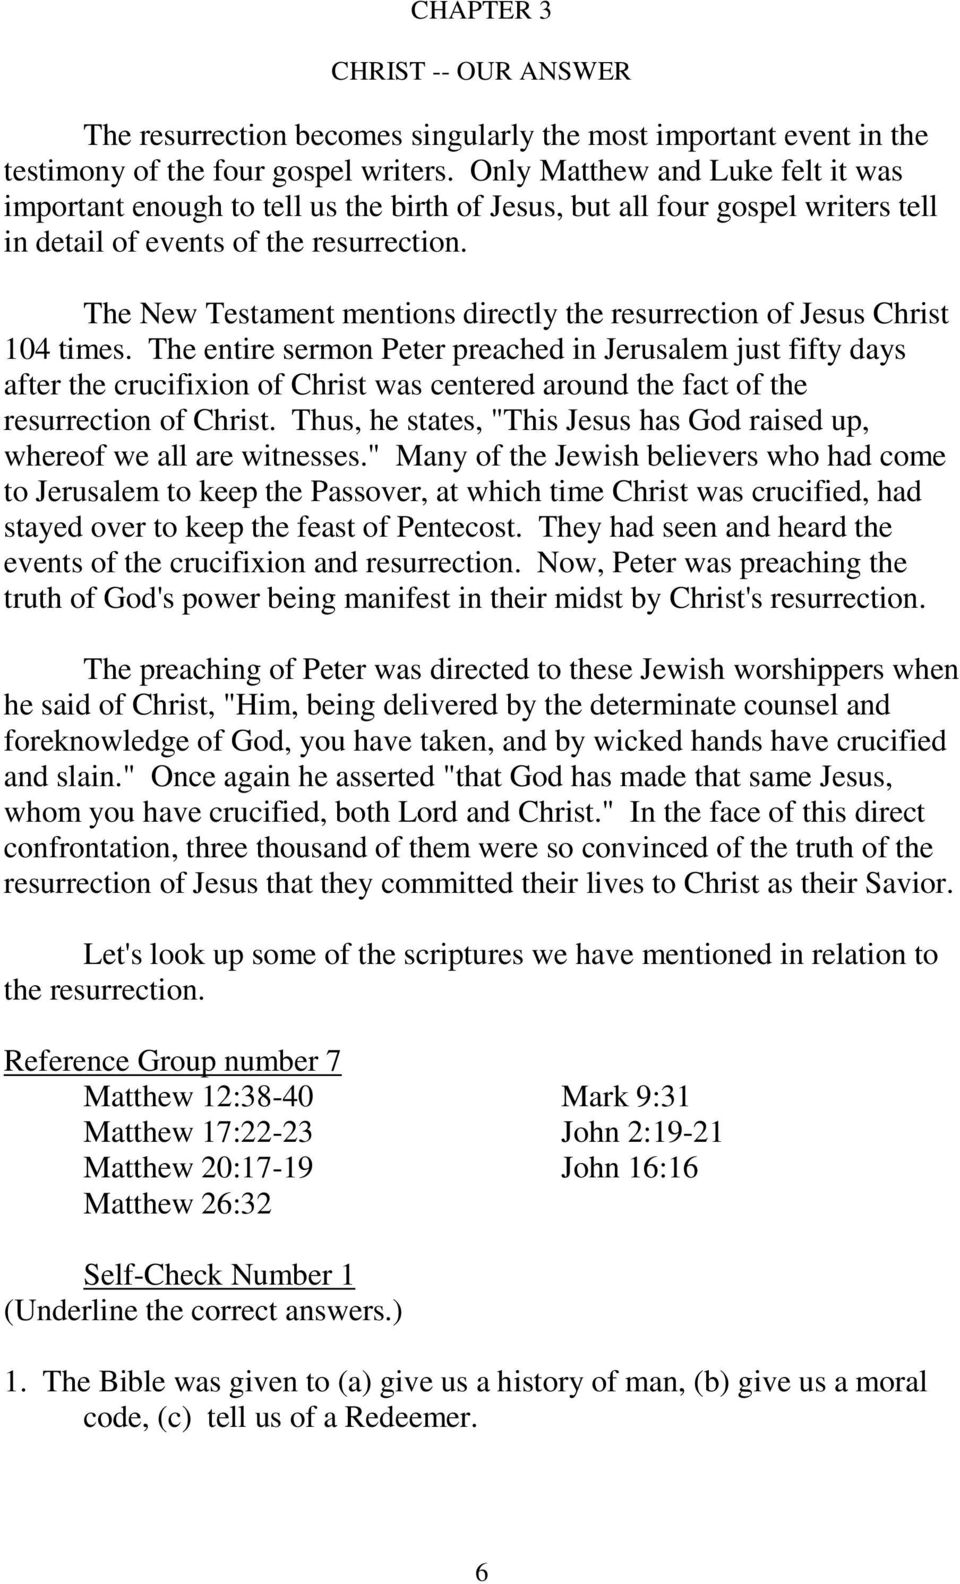 The New Testament mentions directly the resurrection of Jesus Christ 104 times.